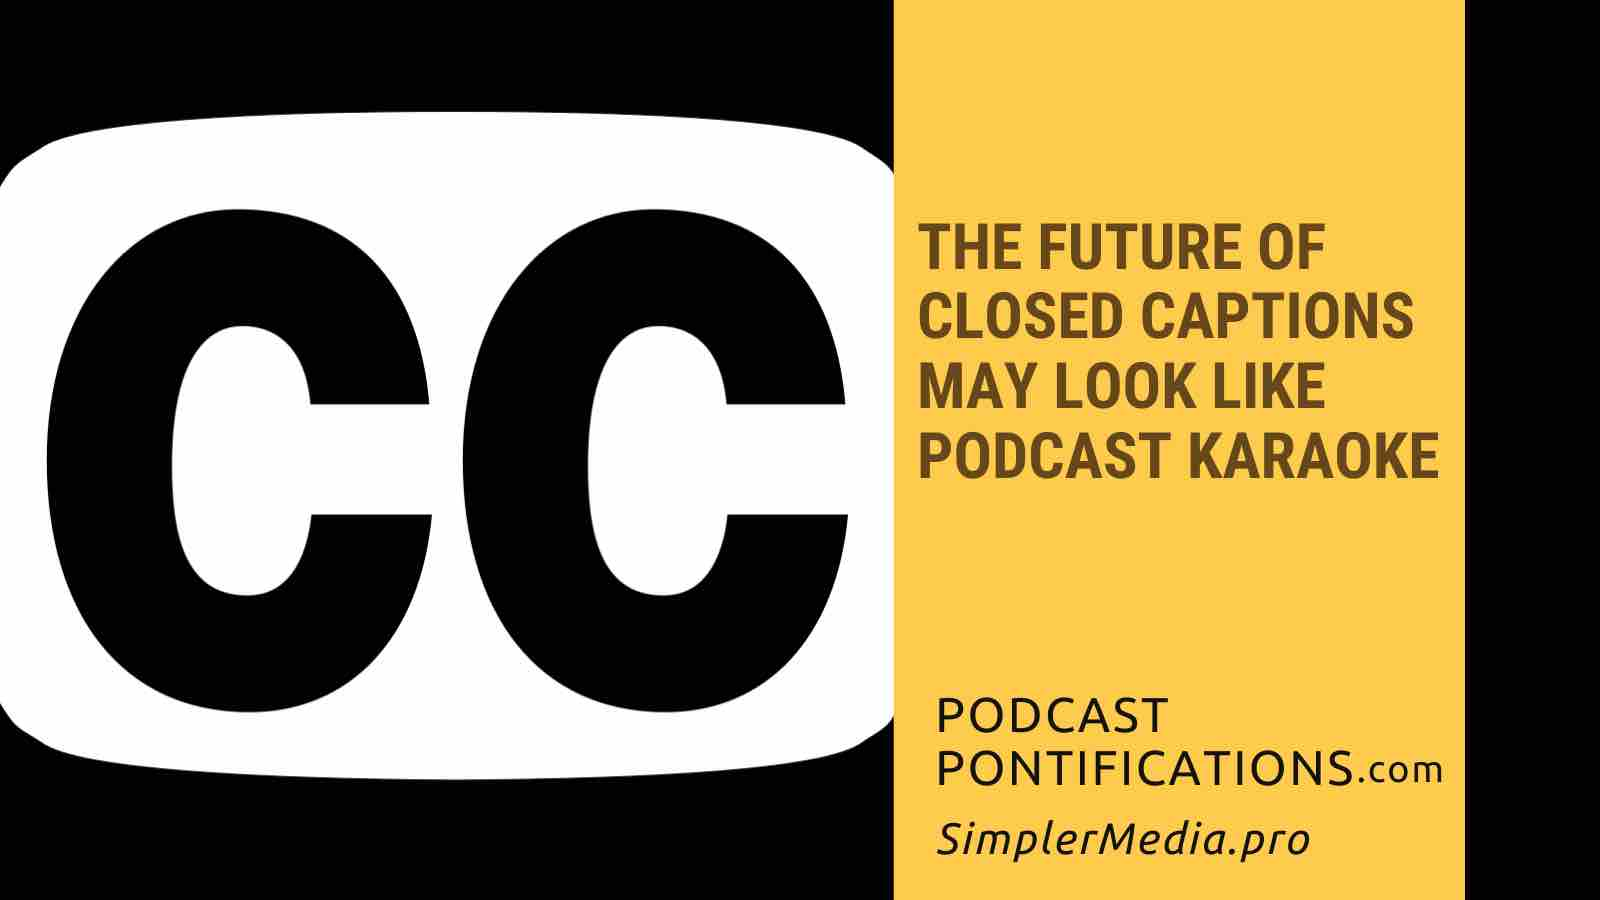 The Future of Closed Captions May Look Like Podcast Karaoke